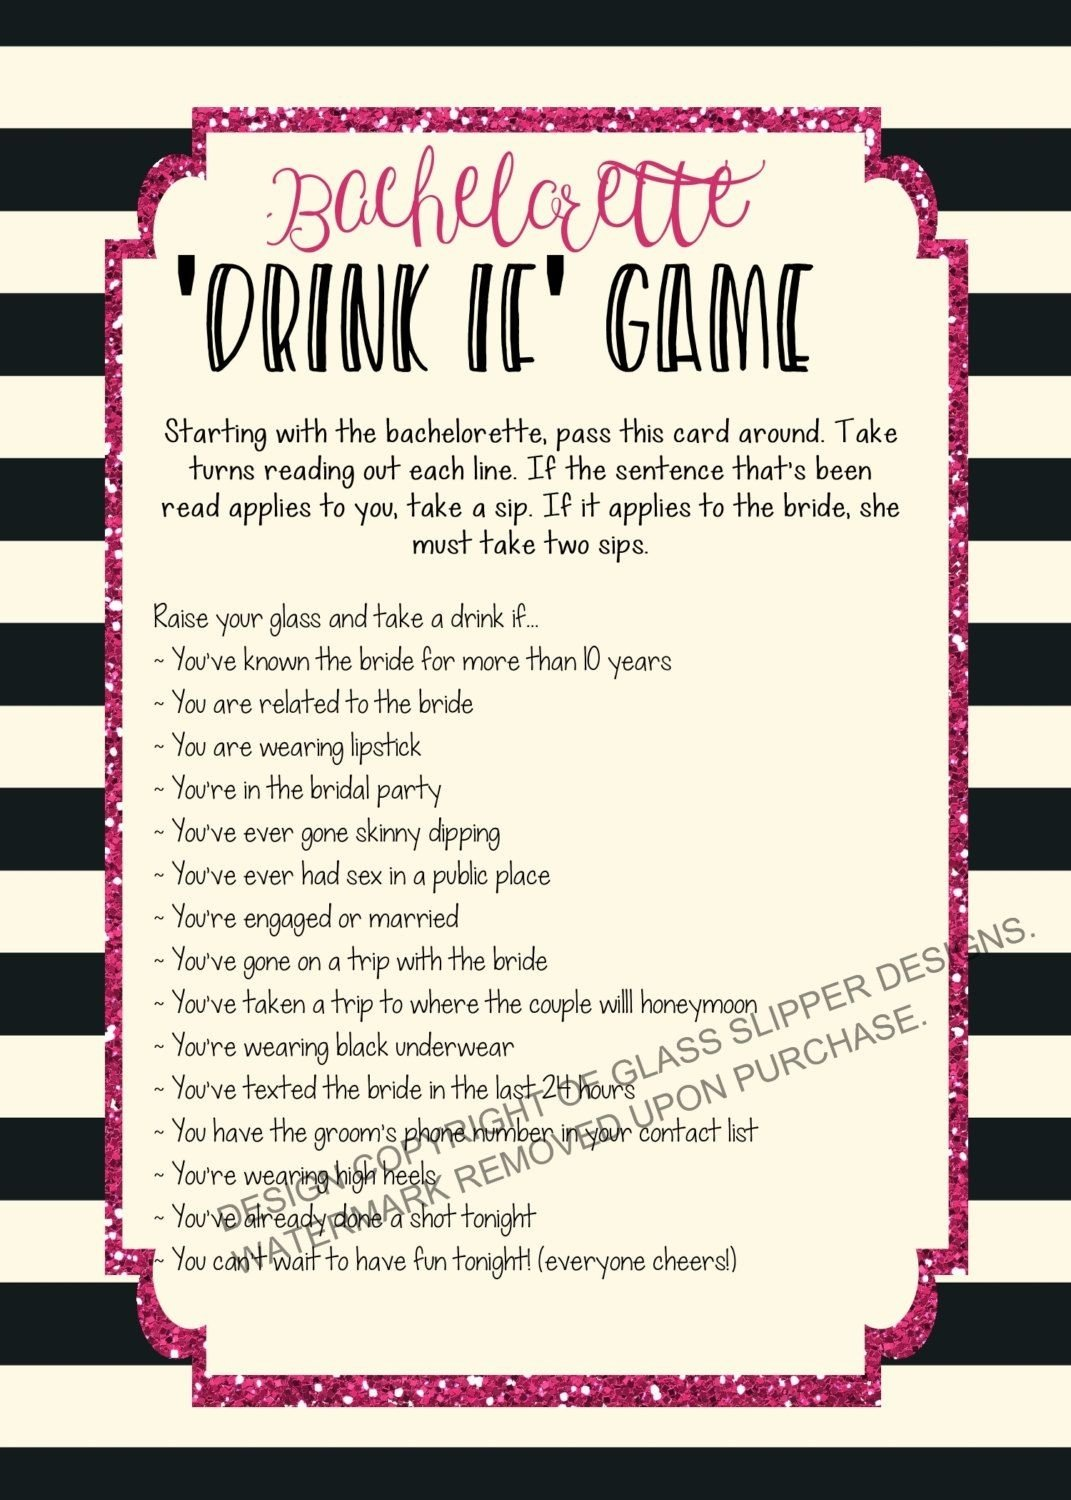 10 Spectacular Fun Ideas For A Bachelorette Party printable bachelorette game bachelorette drinking game 2021